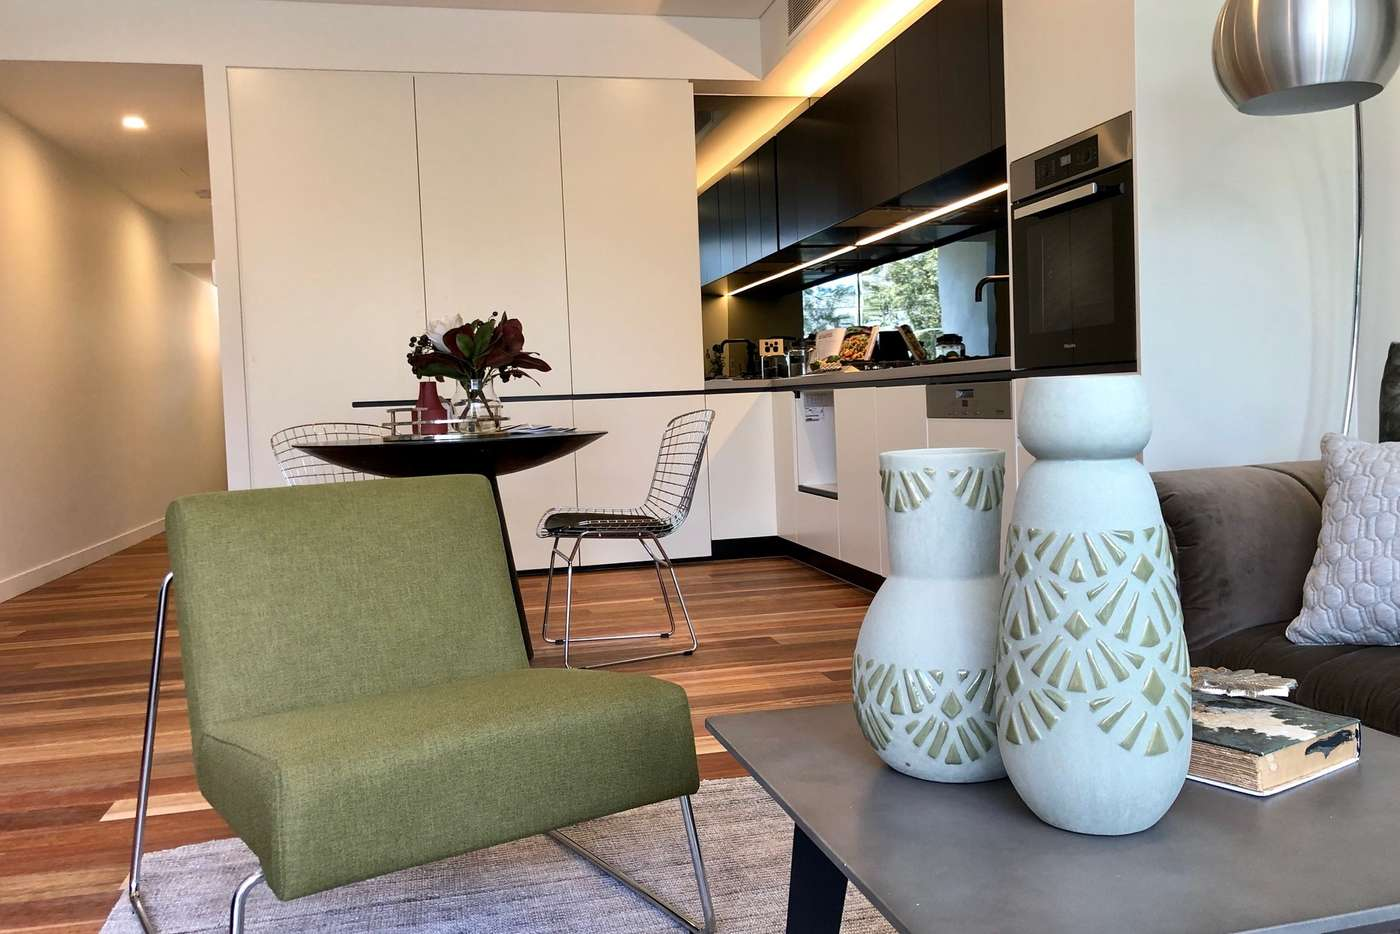 Seventh view of Homely apartment listing, 85/6-8 Crewe Place, Rosebery NSW 2018